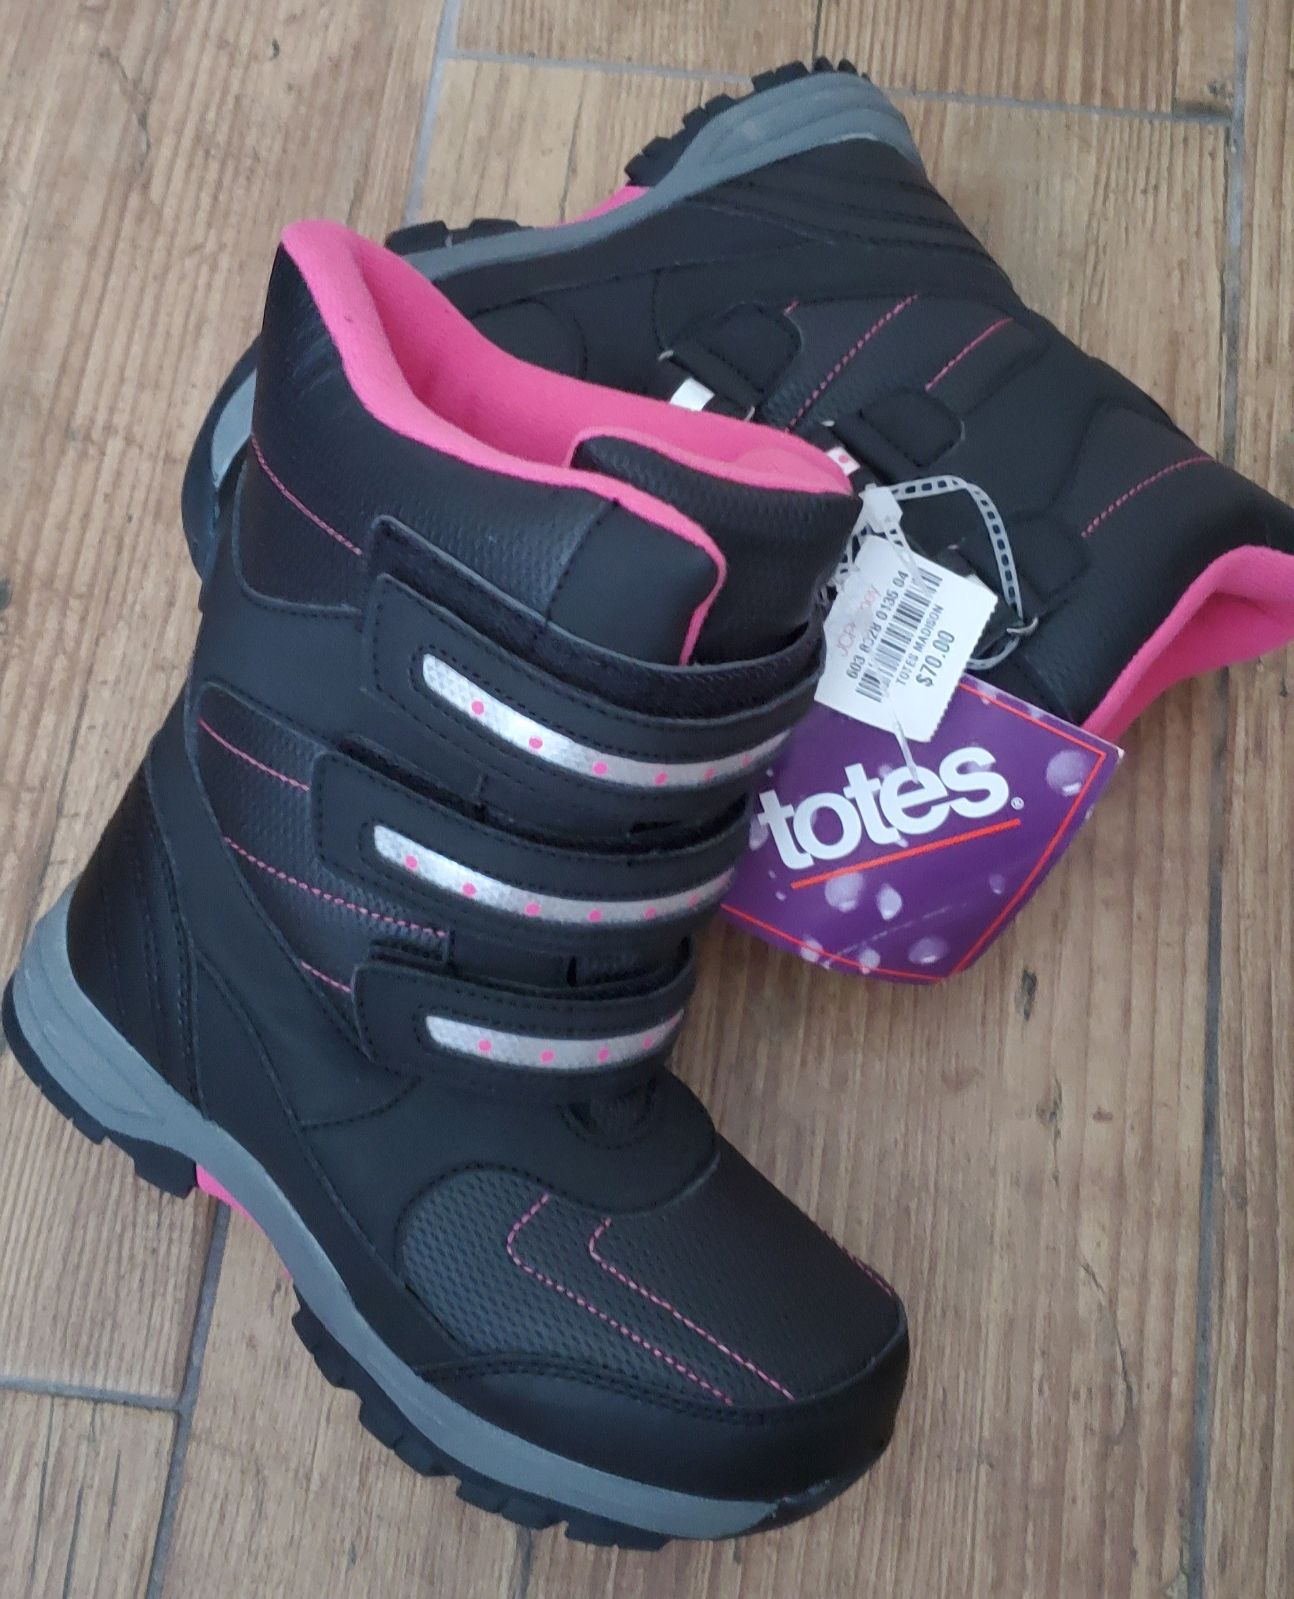 Totes Snow Boots - Girls